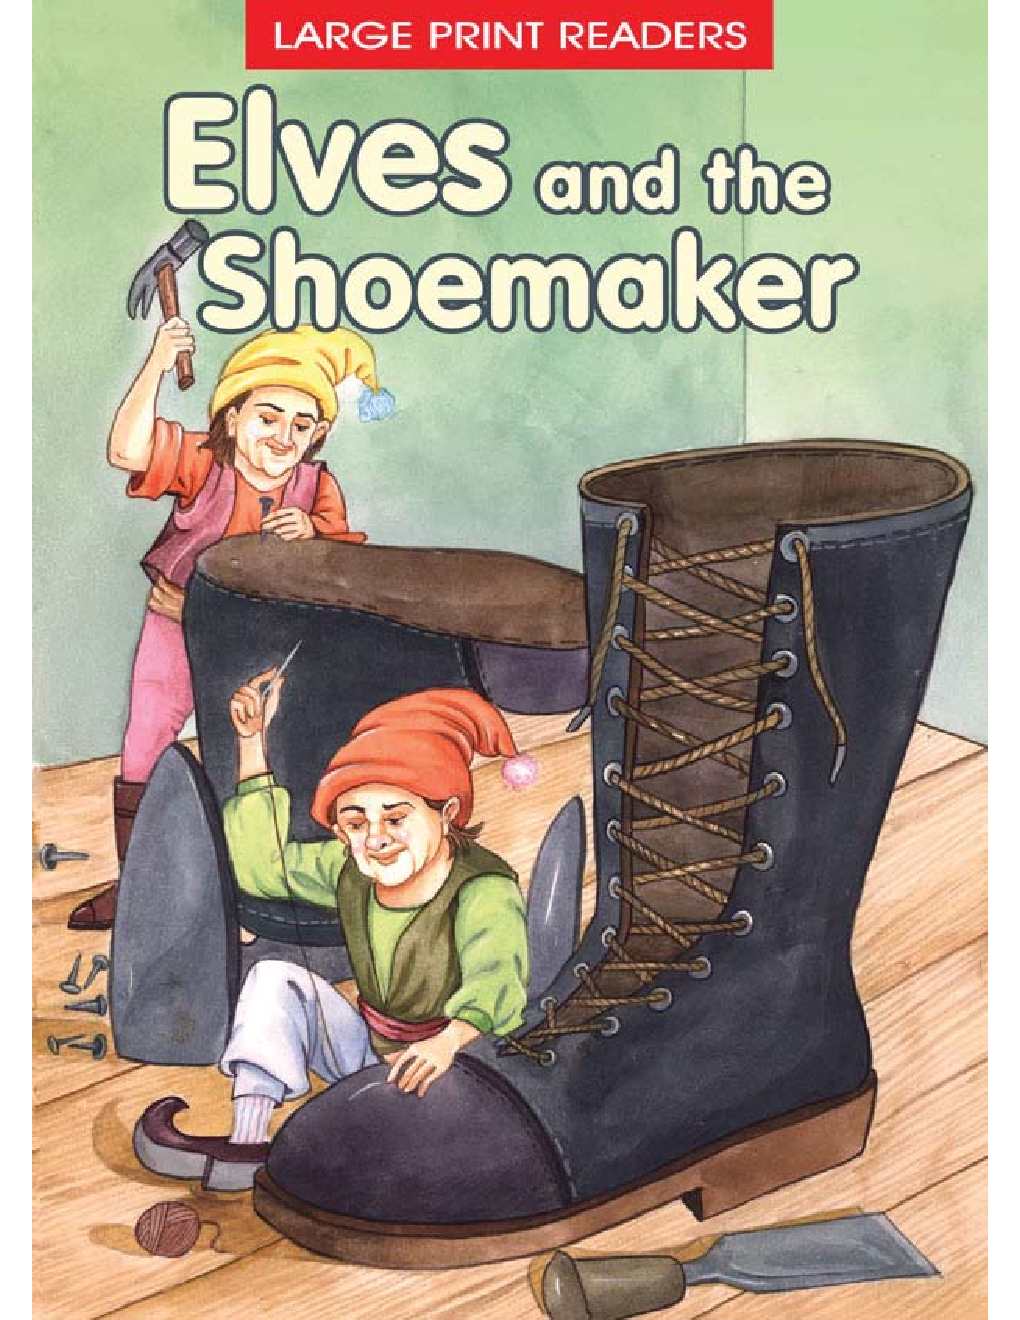 Fairytales4kids: The Elves and the Shoemaker